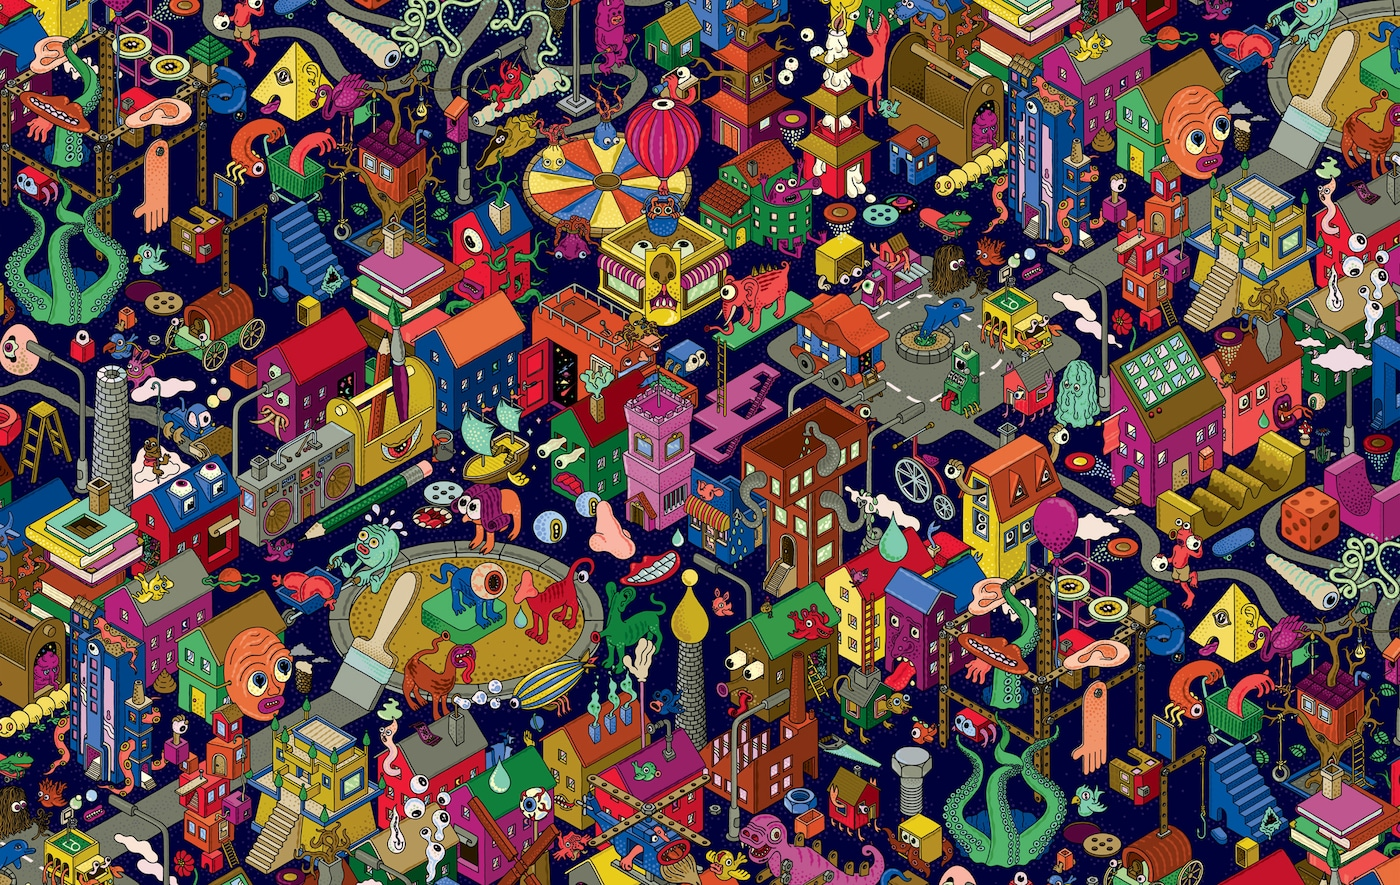 A colorful illustration of a fantasy city.